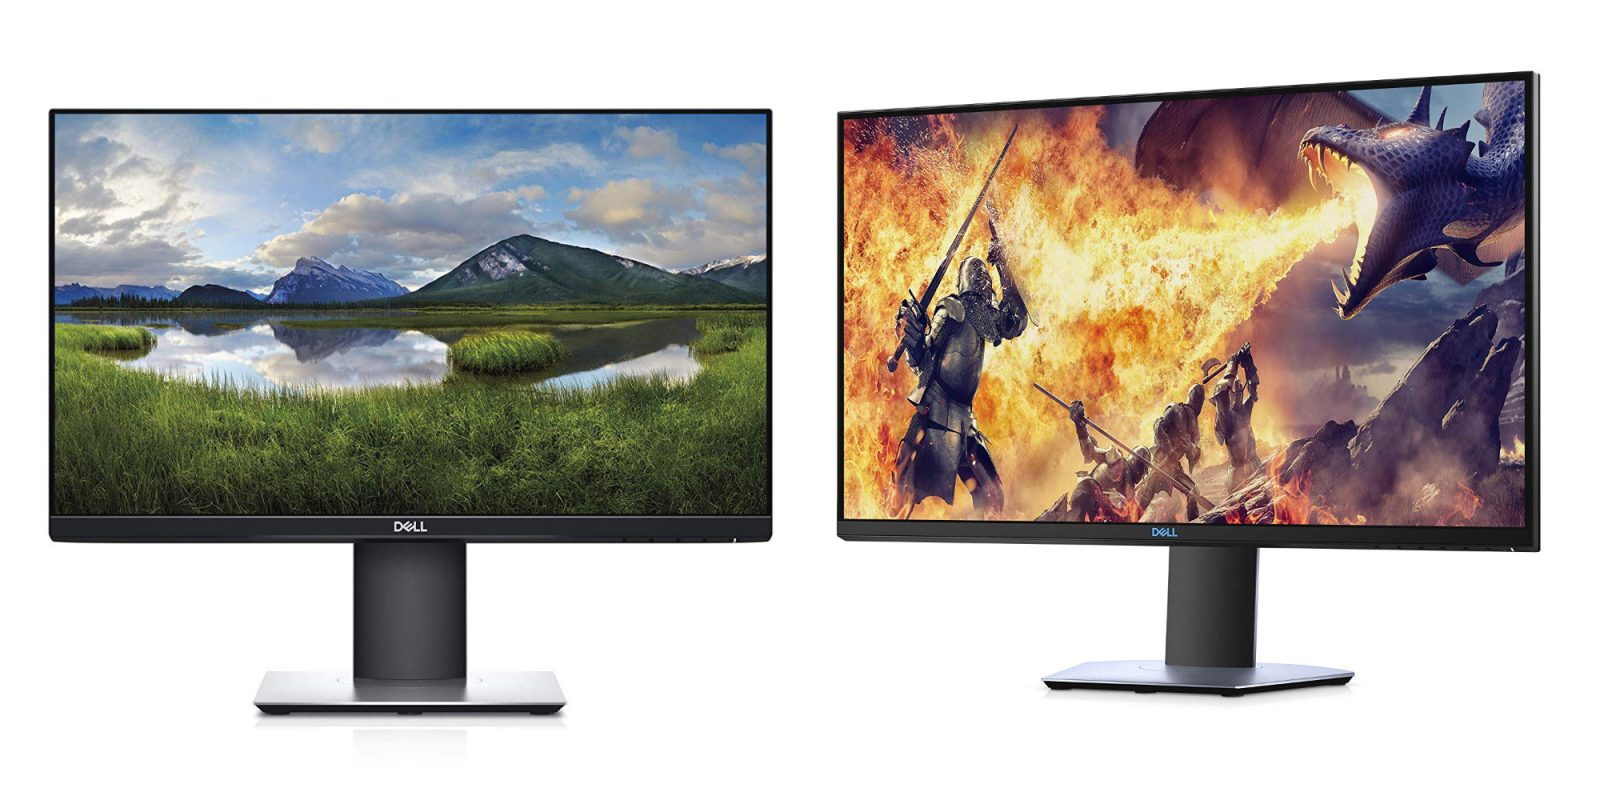 Ultra-thin bezels + a USB hub make Dell's 27-inch Full HD Monitor great at $200 (Save $55+), more